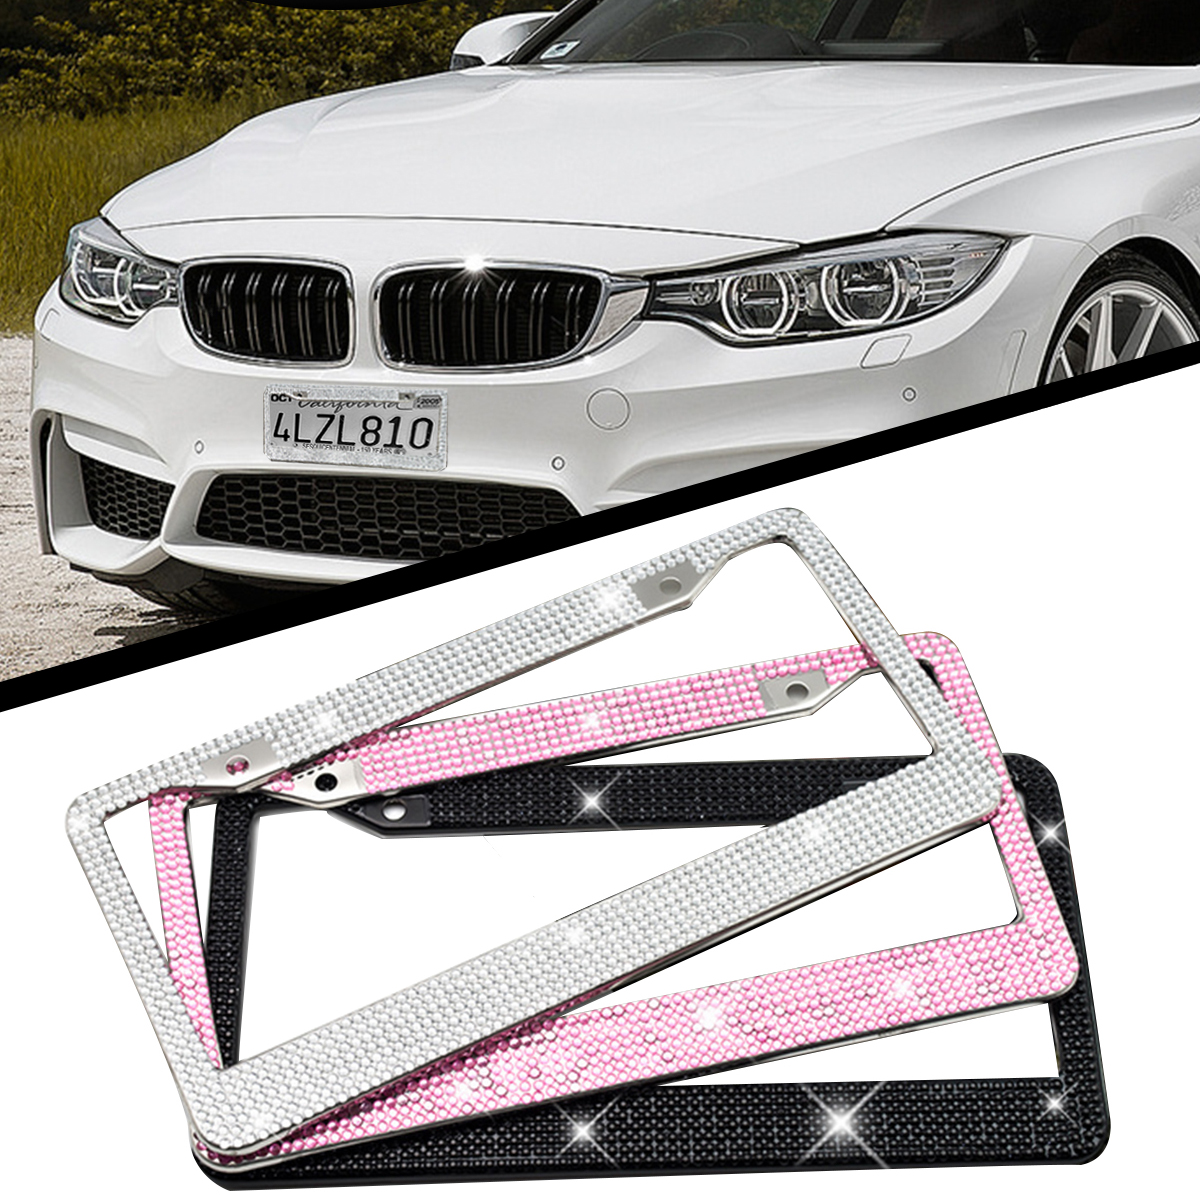 Car type diamond cutting rhinestone license plate frame - cute shiny stainless steel frame plate - flash crystal car accessories